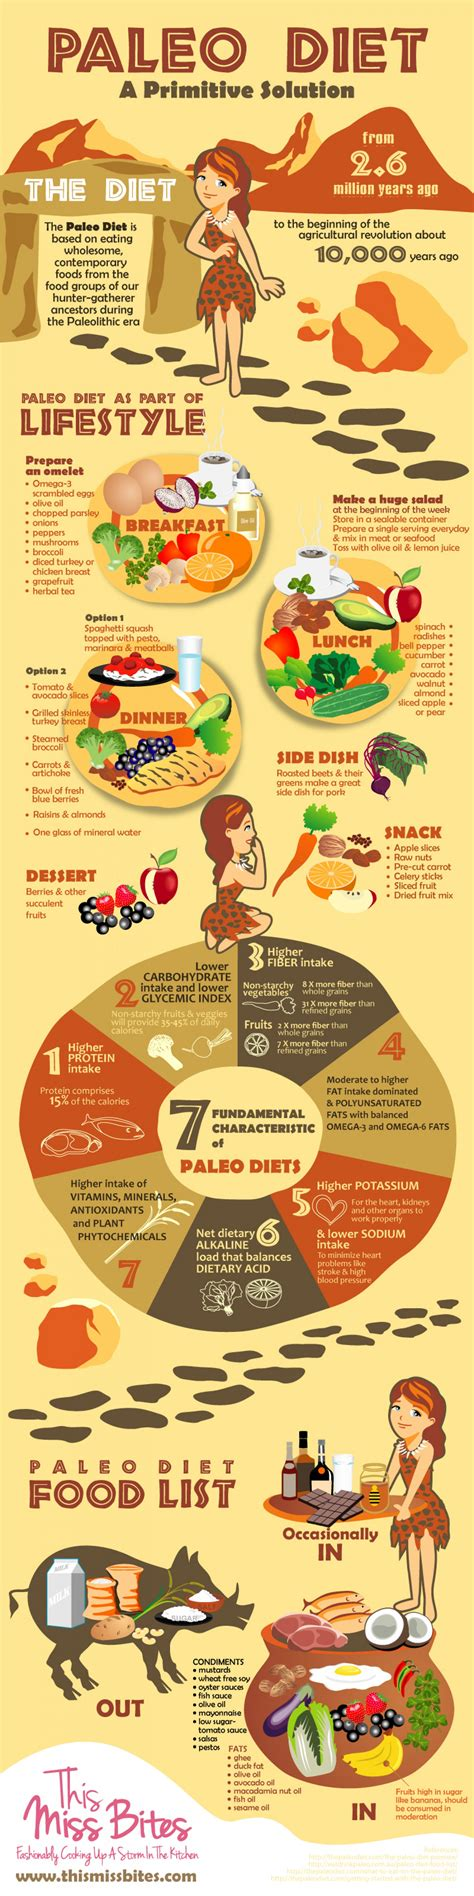 paleolithic diet paleo diet plan for beginners infographic